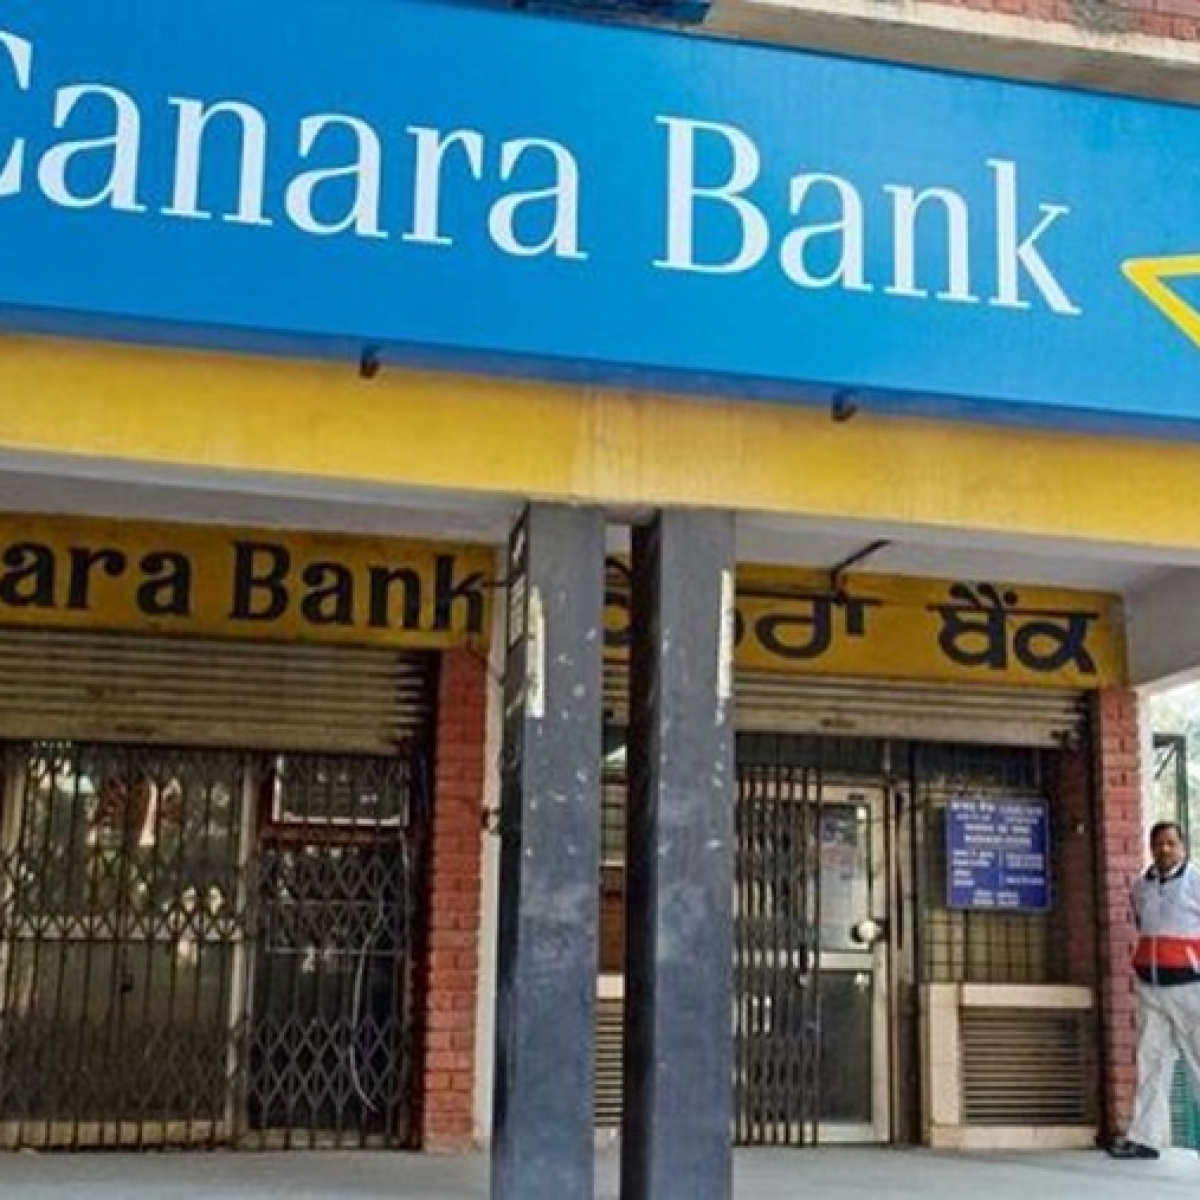 Canara Bank to be lead sponsor of bad bank, to pick up 12% stake